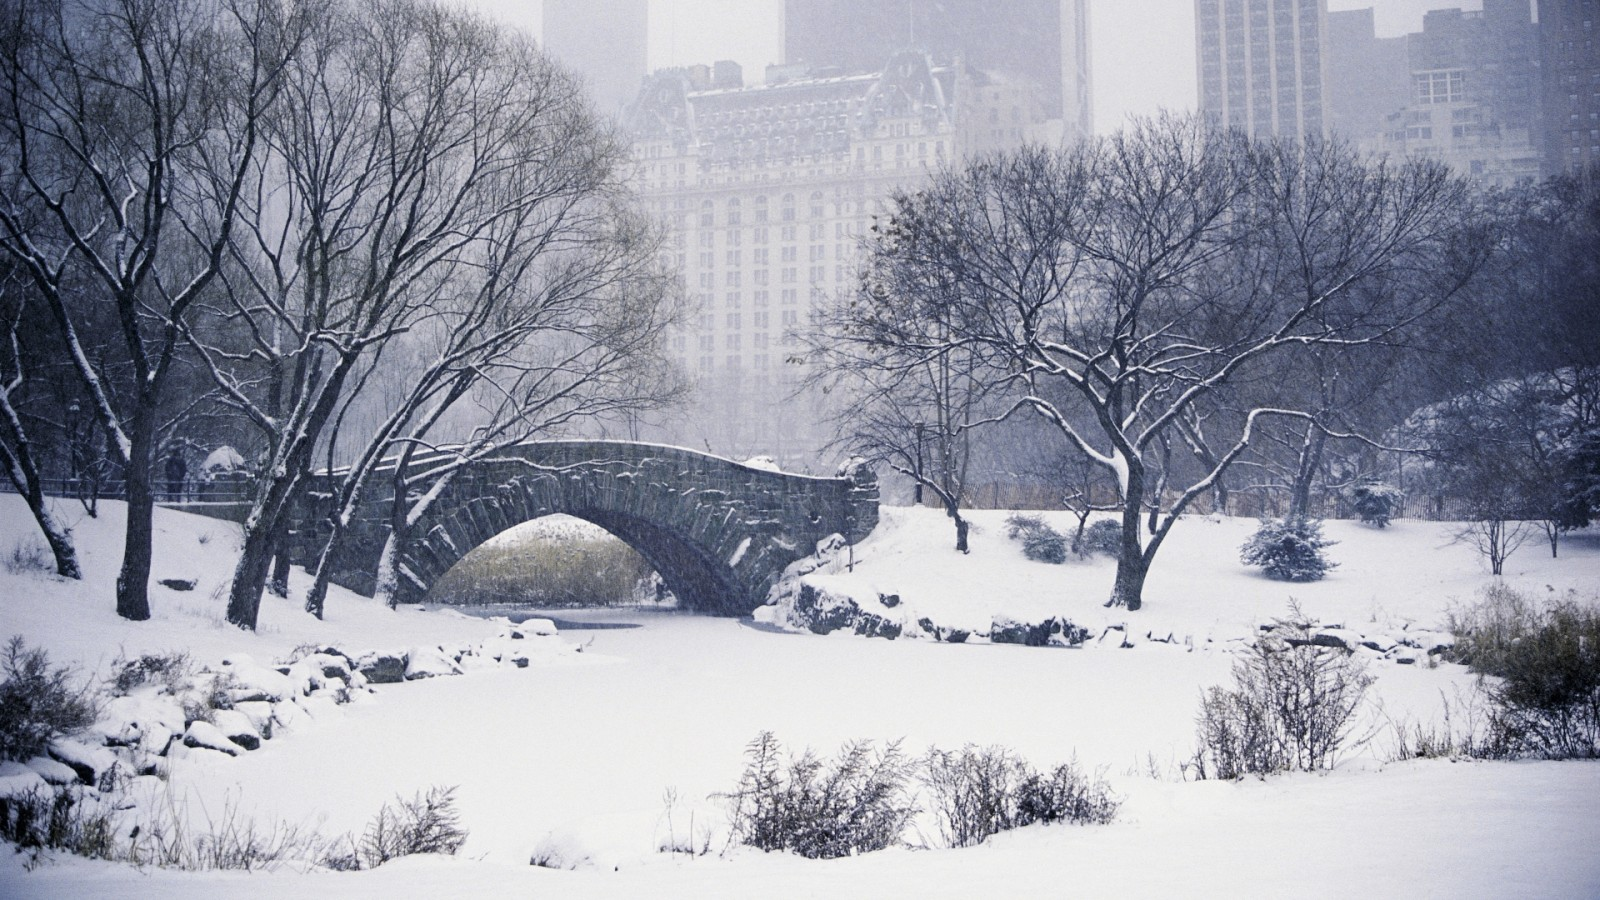 New york wallpaper and background image 1600x900 id - Nyc winter wallpaper hd ...